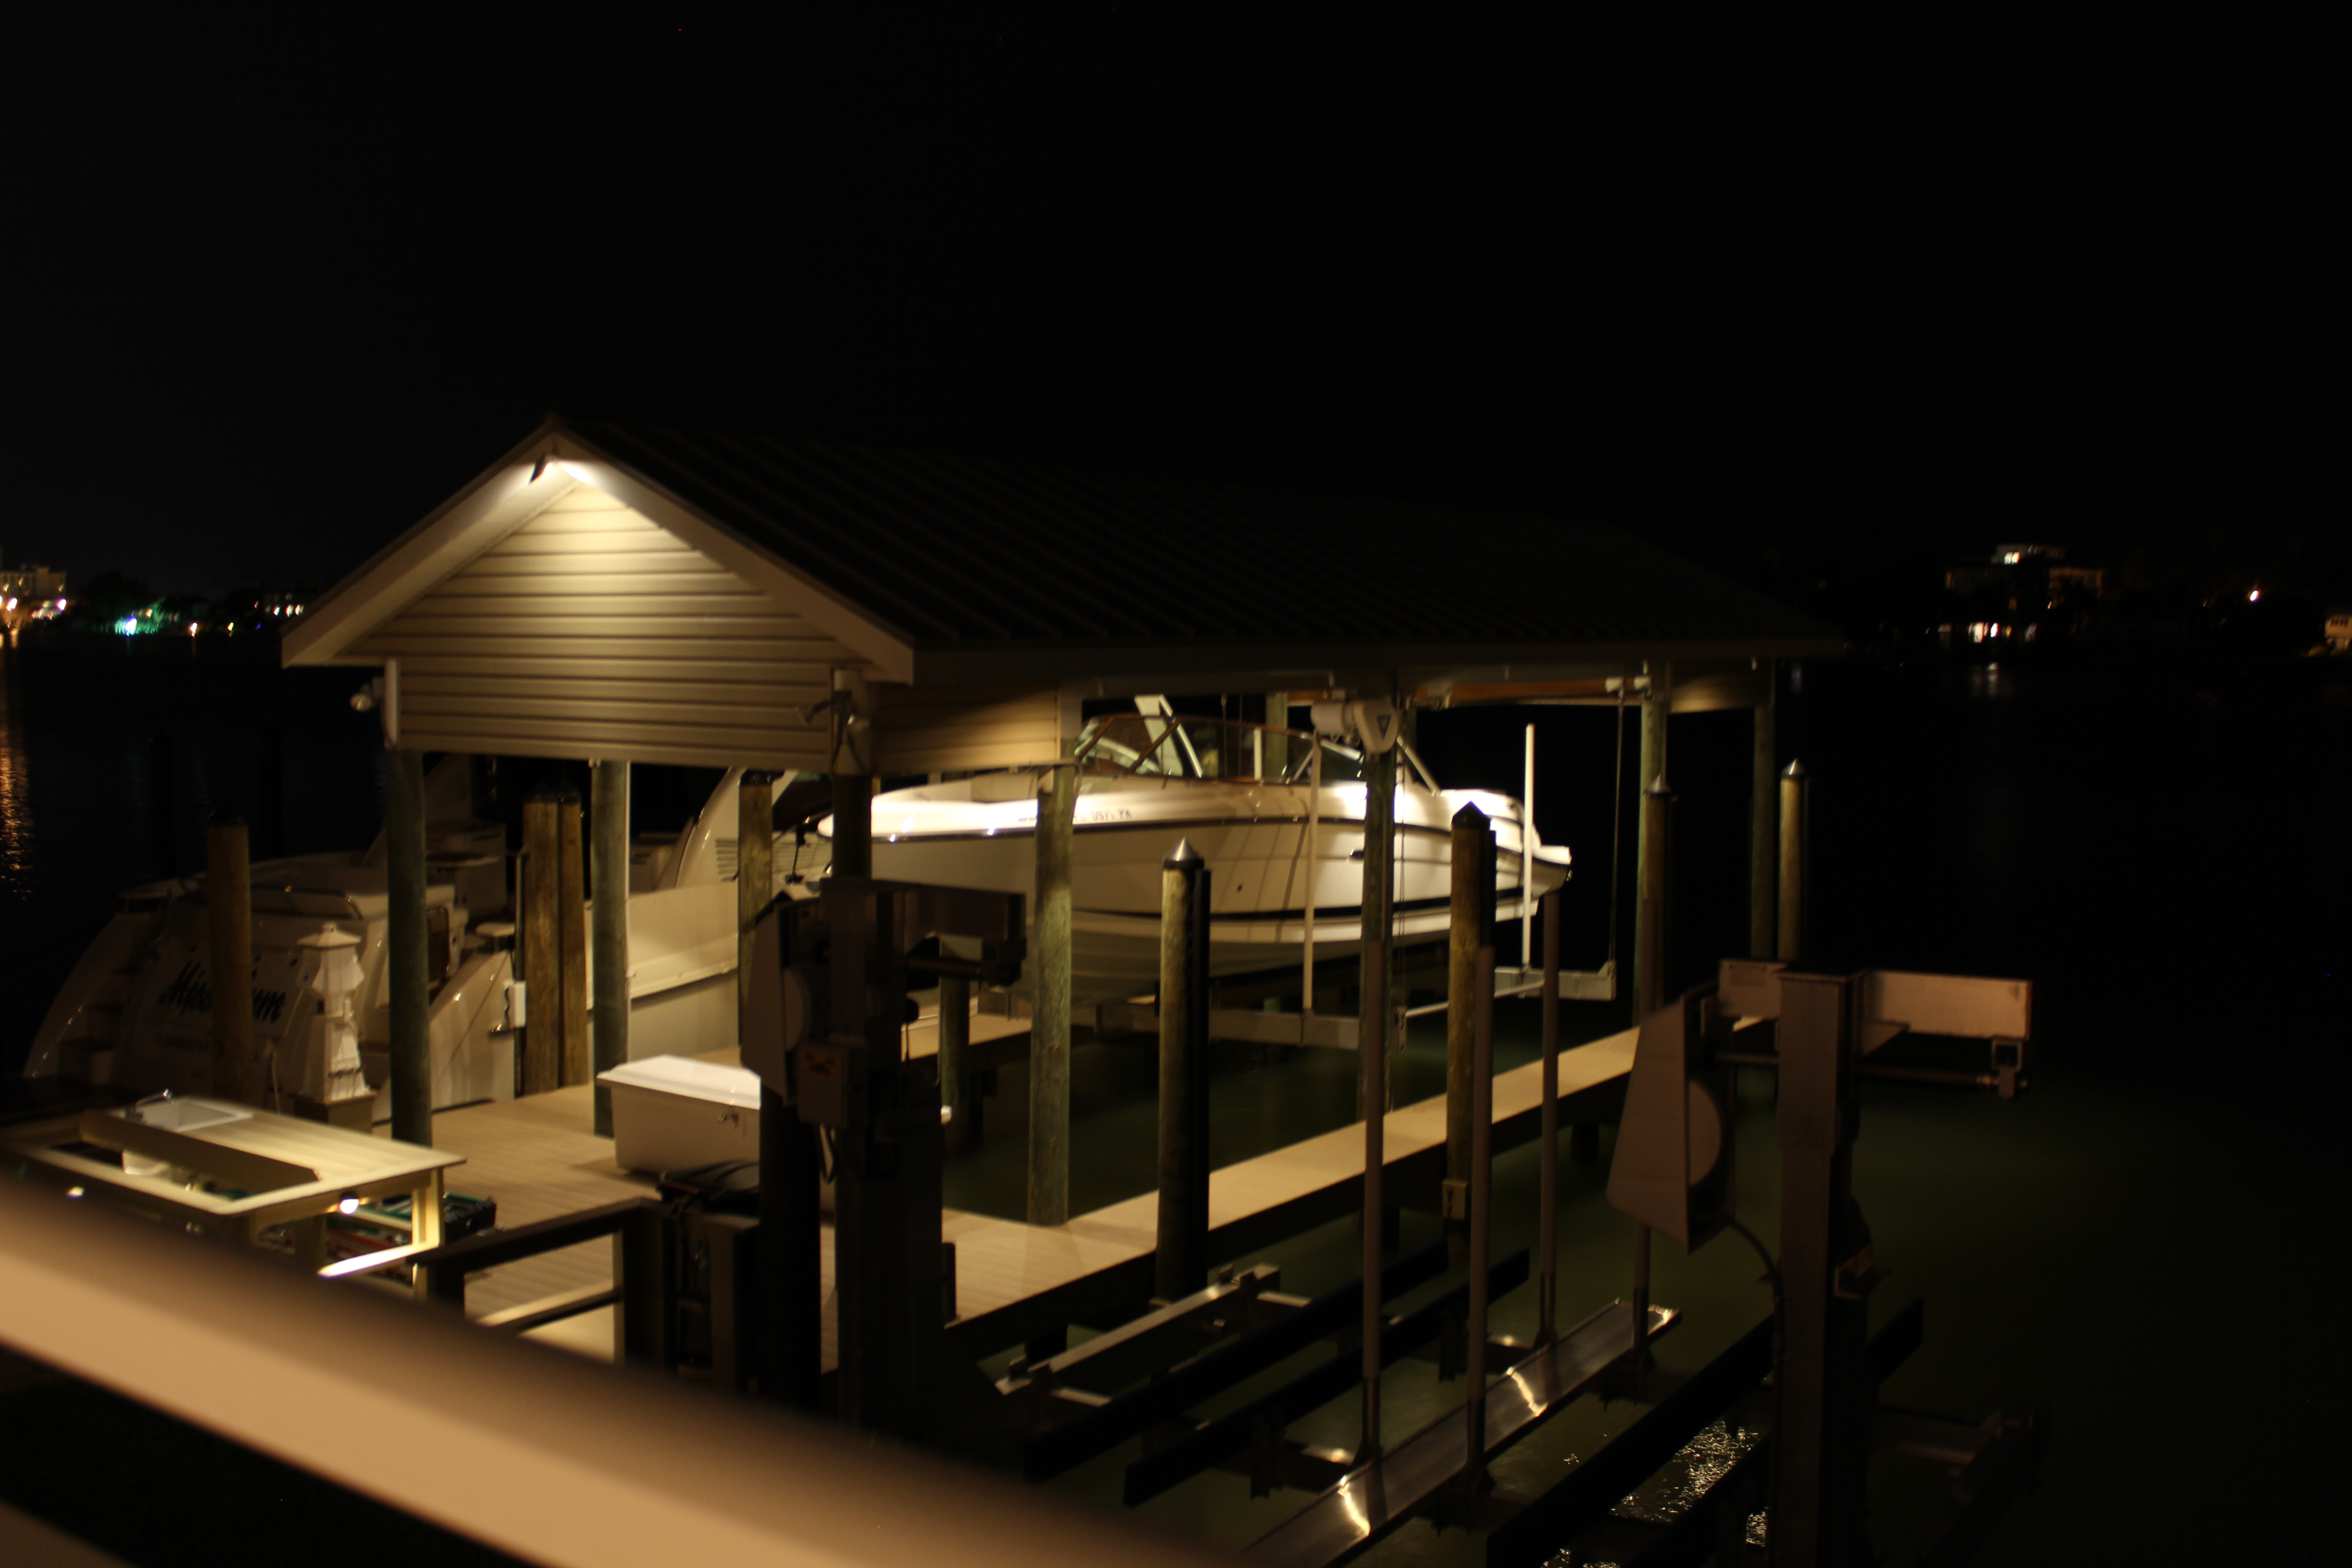 a boat on a deck at night with light